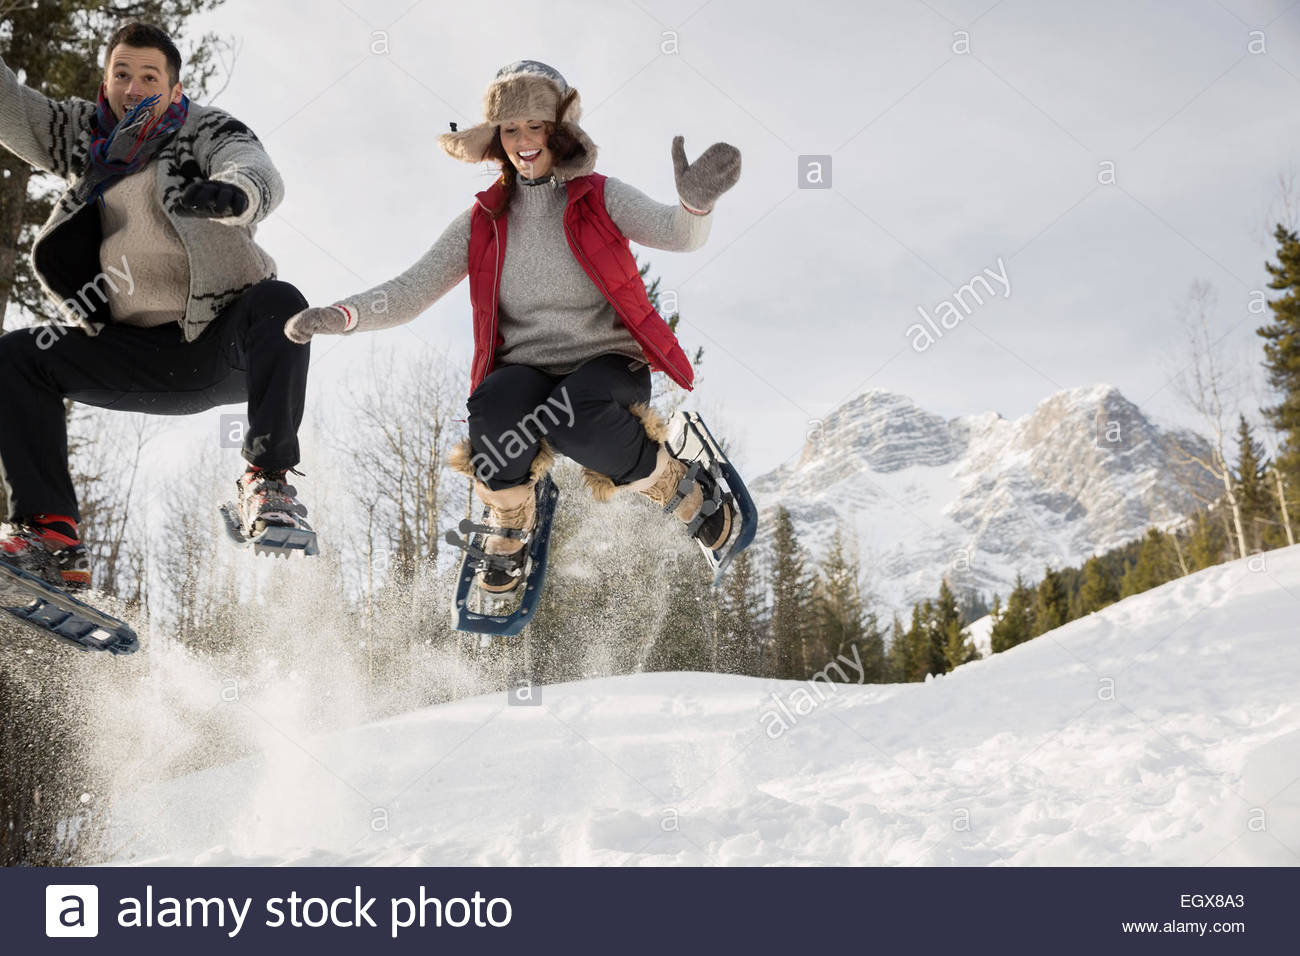 Couple jumping in snowshoes below snowy mountain - Stock Image